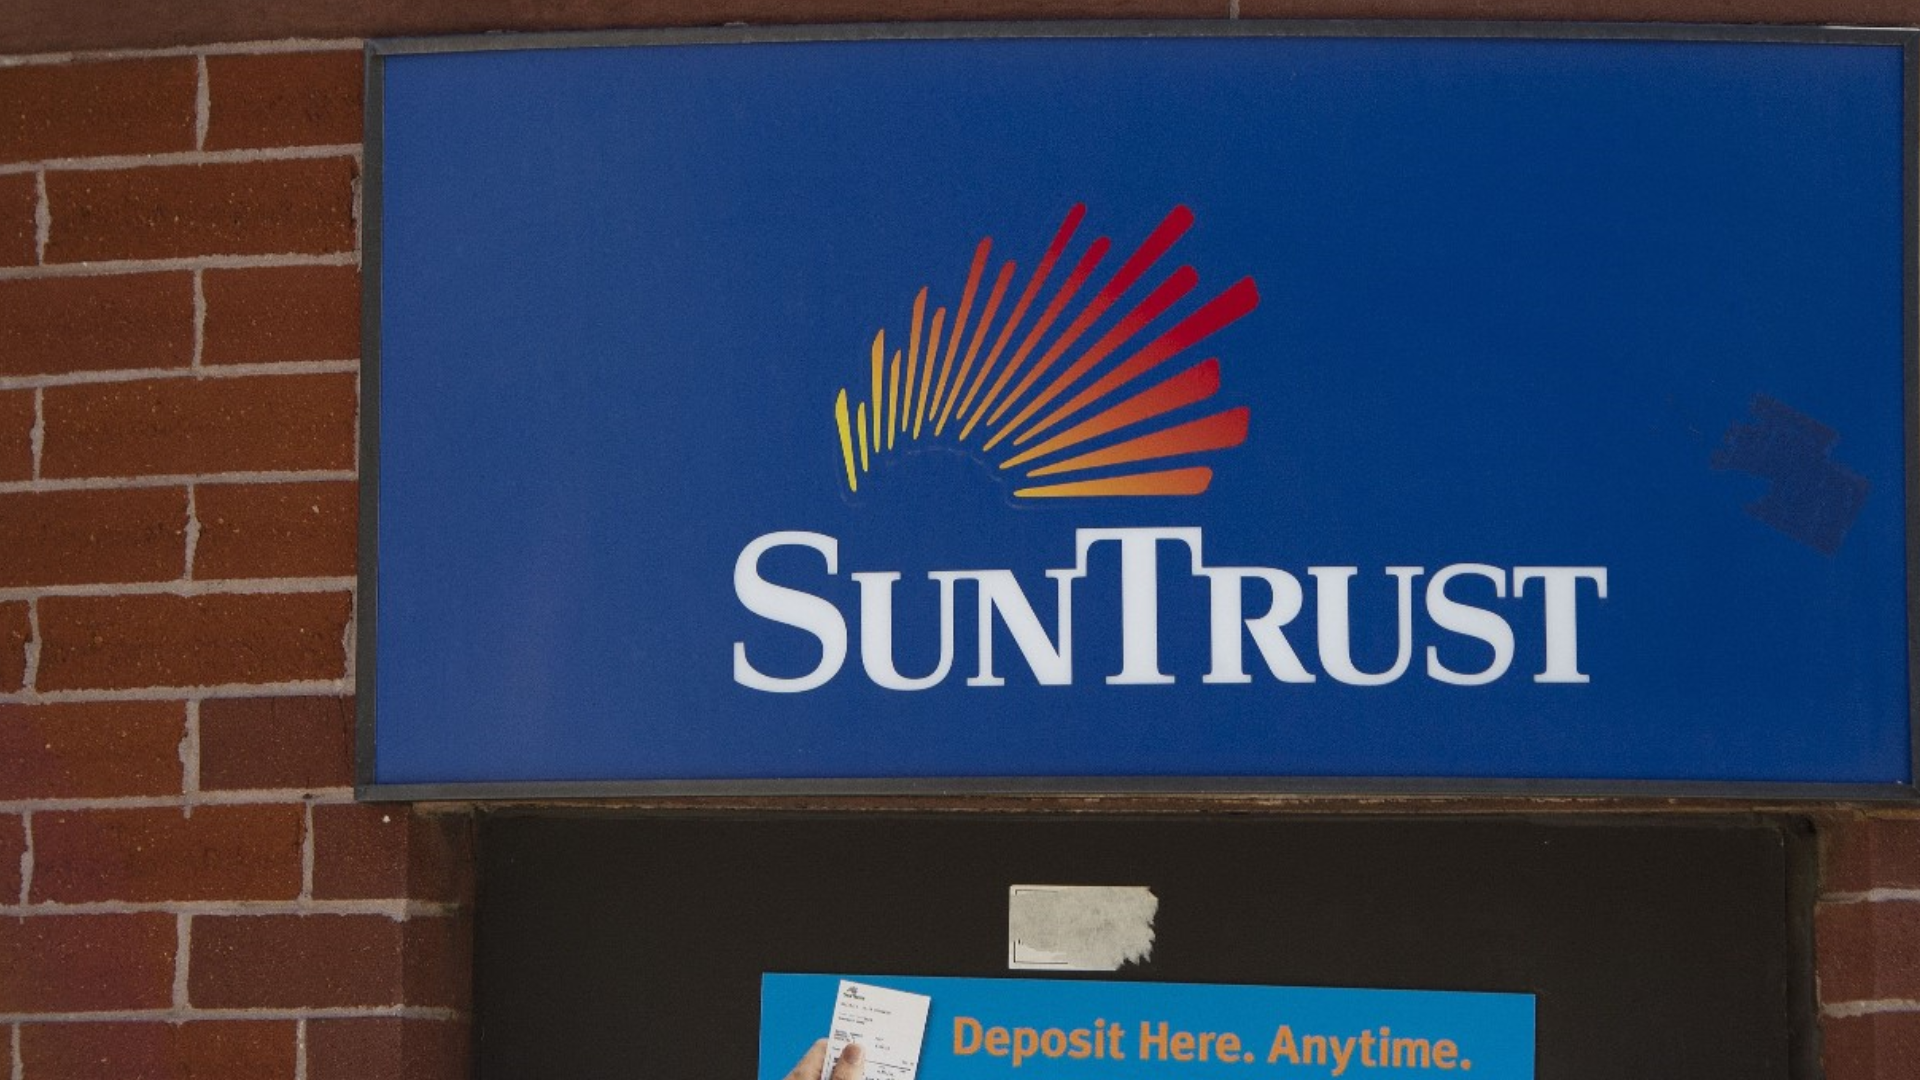 did suntrust merge with another bank